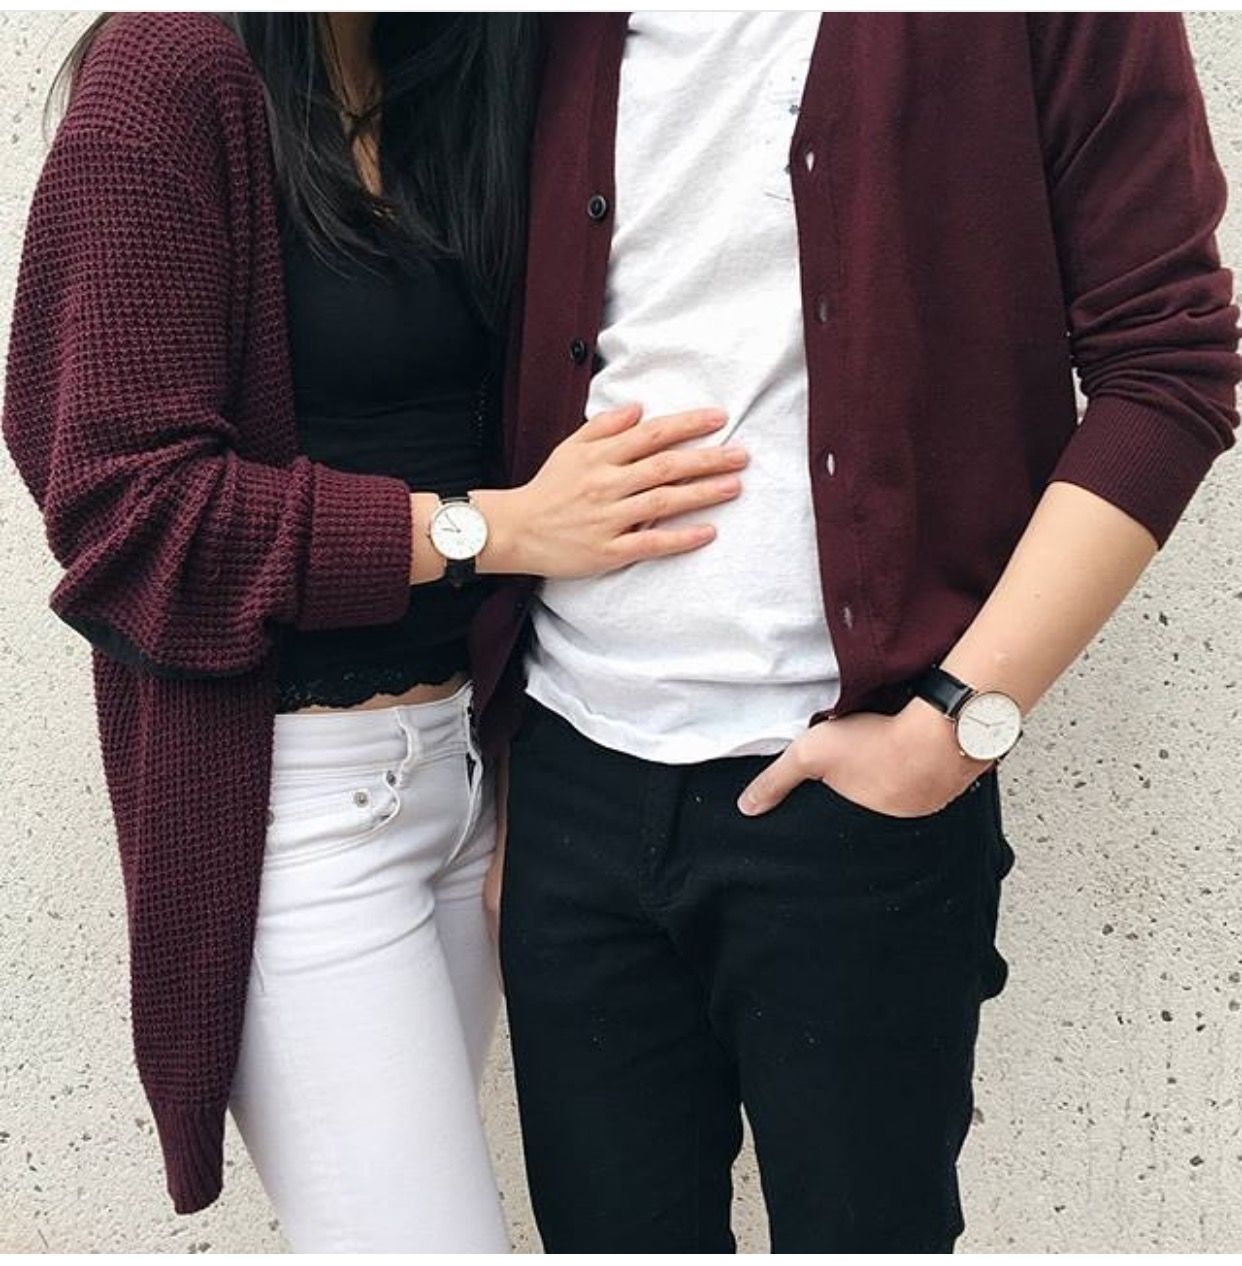 Fashion couple couples goals pinterest fashion for Matching denim shirt and jeans